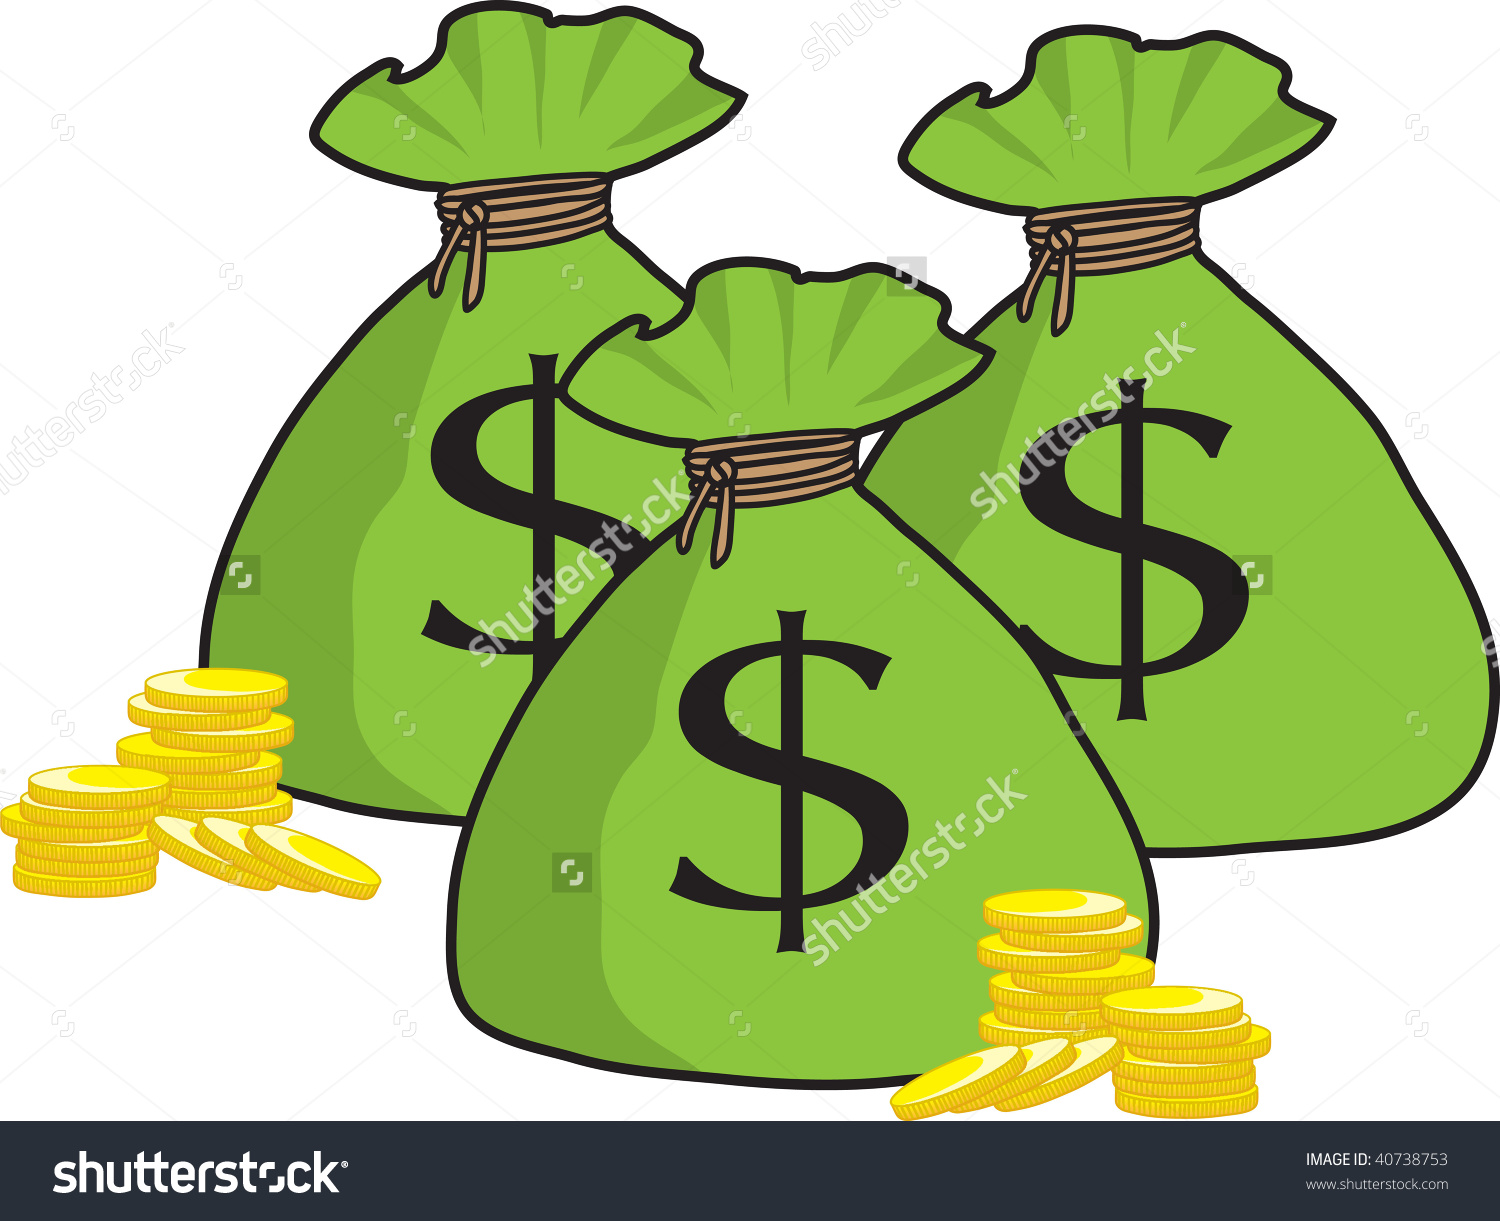 Money clipart #9, Download drawings